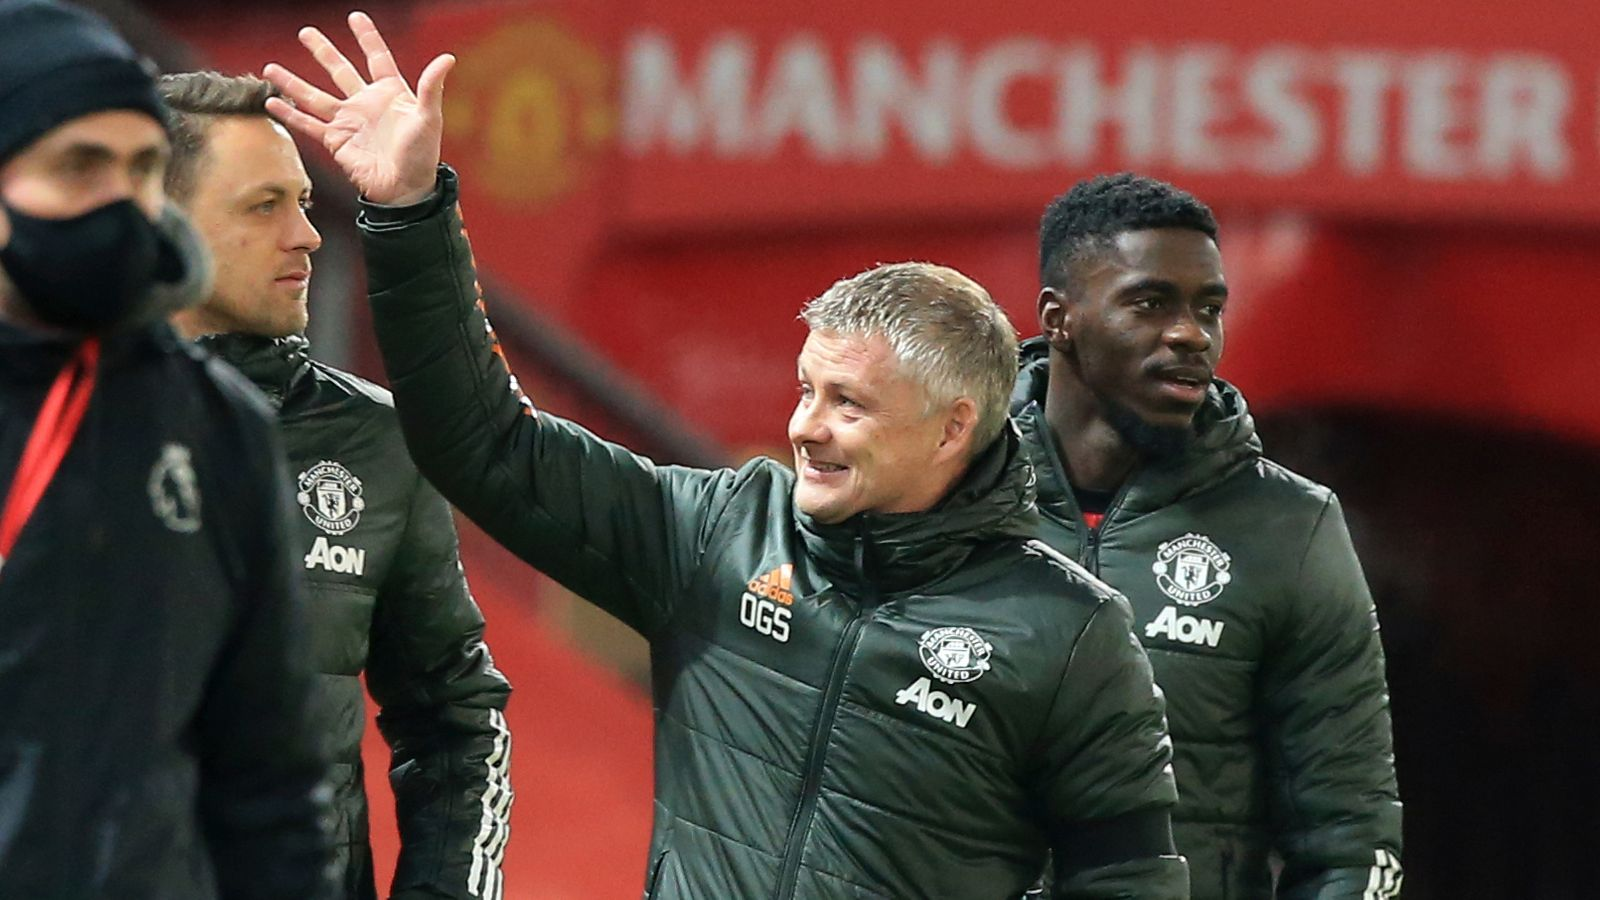 """Ole Gunnar Solskjaer: Manchester United """"has no excuses"""" before the Carabao Cup semi-final against Man City 